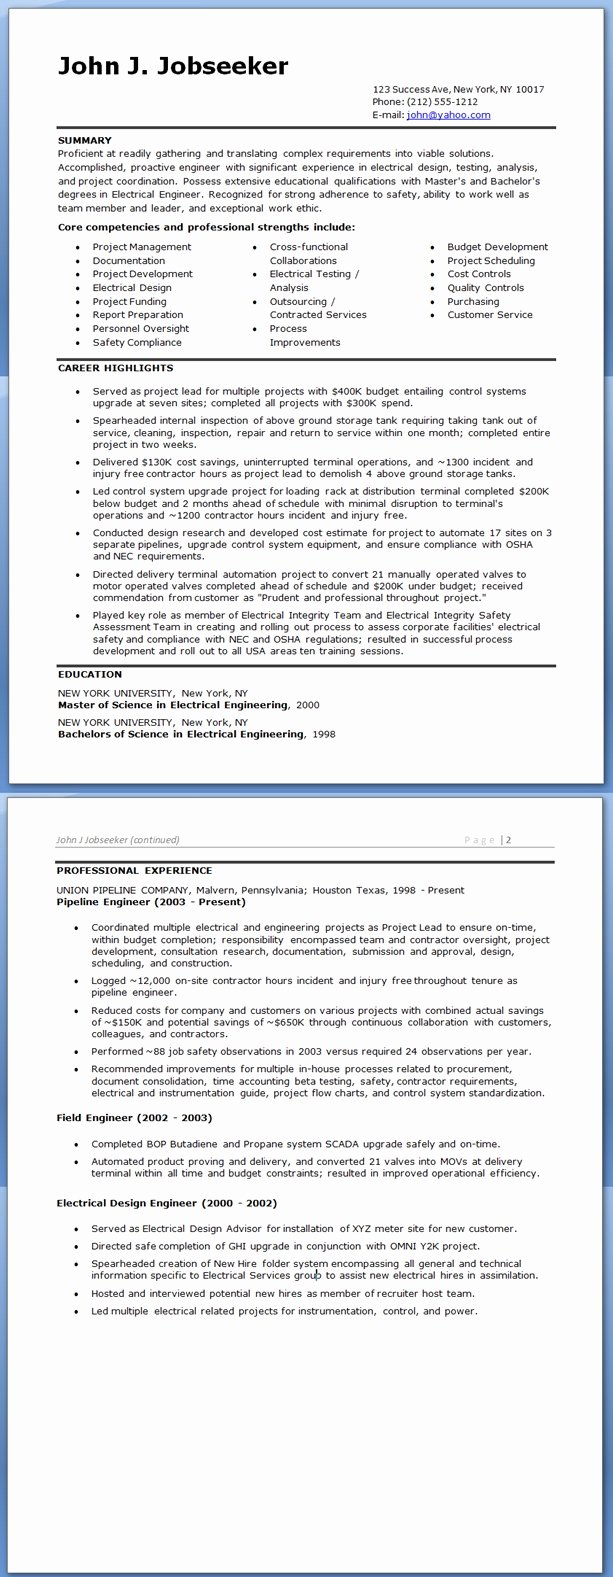 Electrical Engineer Resume Sample New Electrical Engineer Resume Sample Doc Experienced